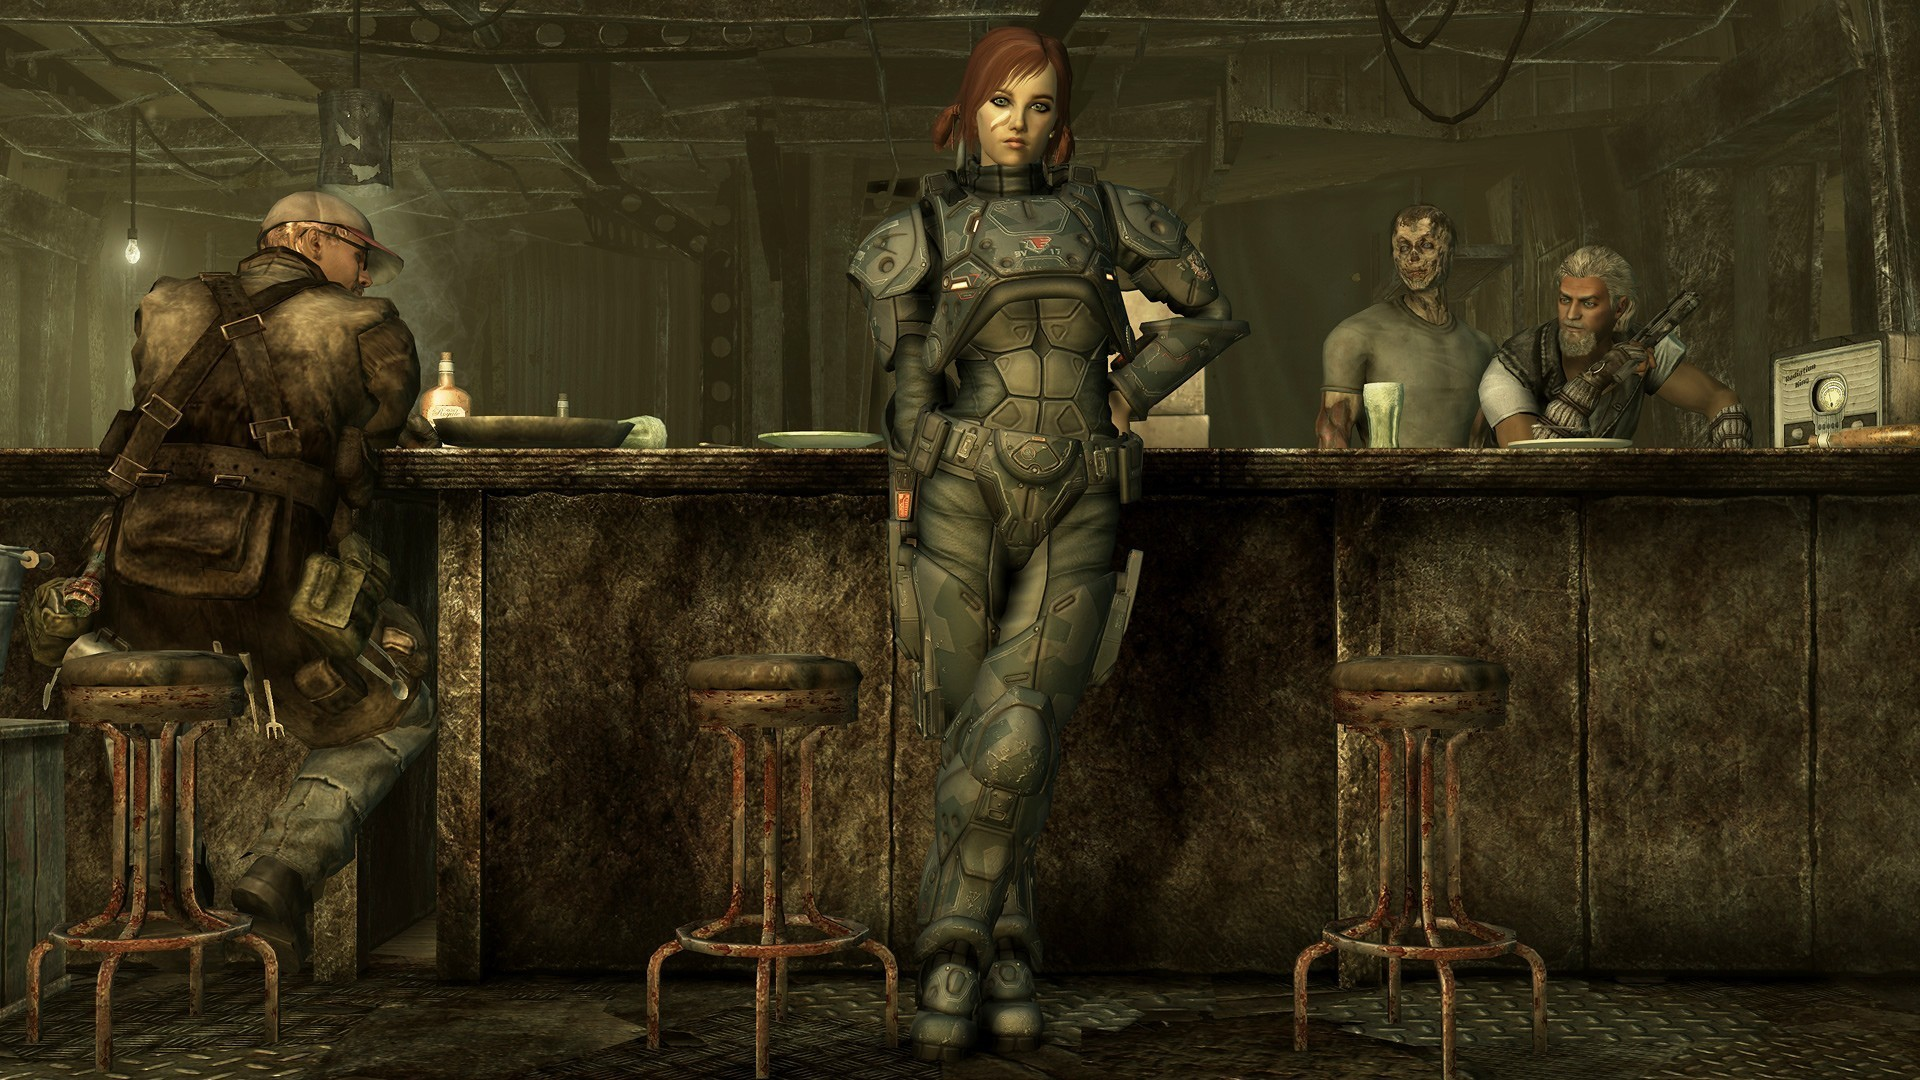 1920x1080 Fallout 3 wallpaper - 1034237